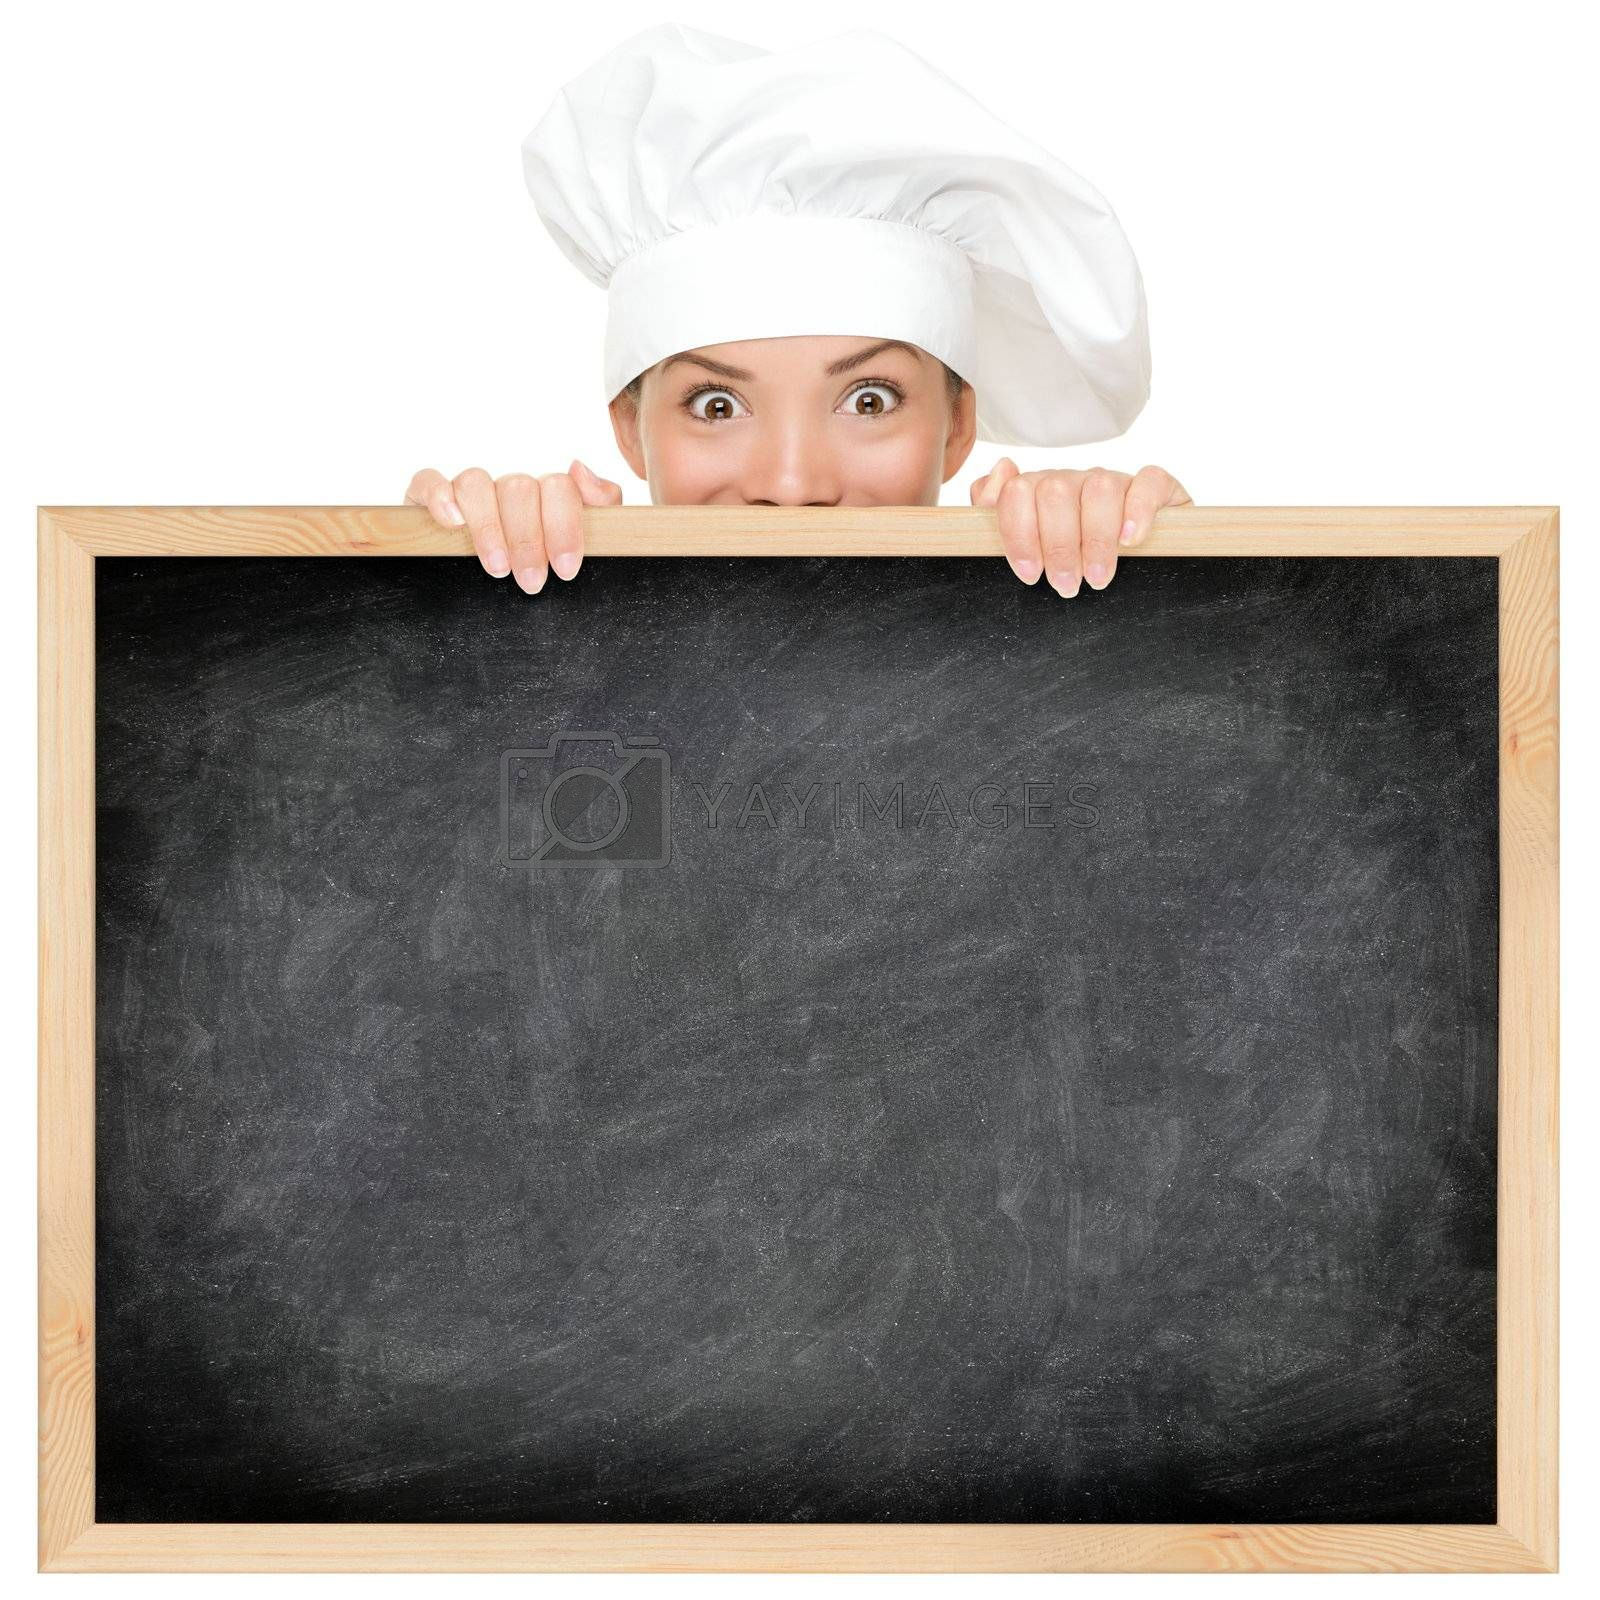 Chef showing restaurant menu blackboard - empty blank with copy space for text etc. Funny woman cook peeking over sign. Beautiful happy smiling mixed race Caucasian / Asian female model. Isolated on white background.